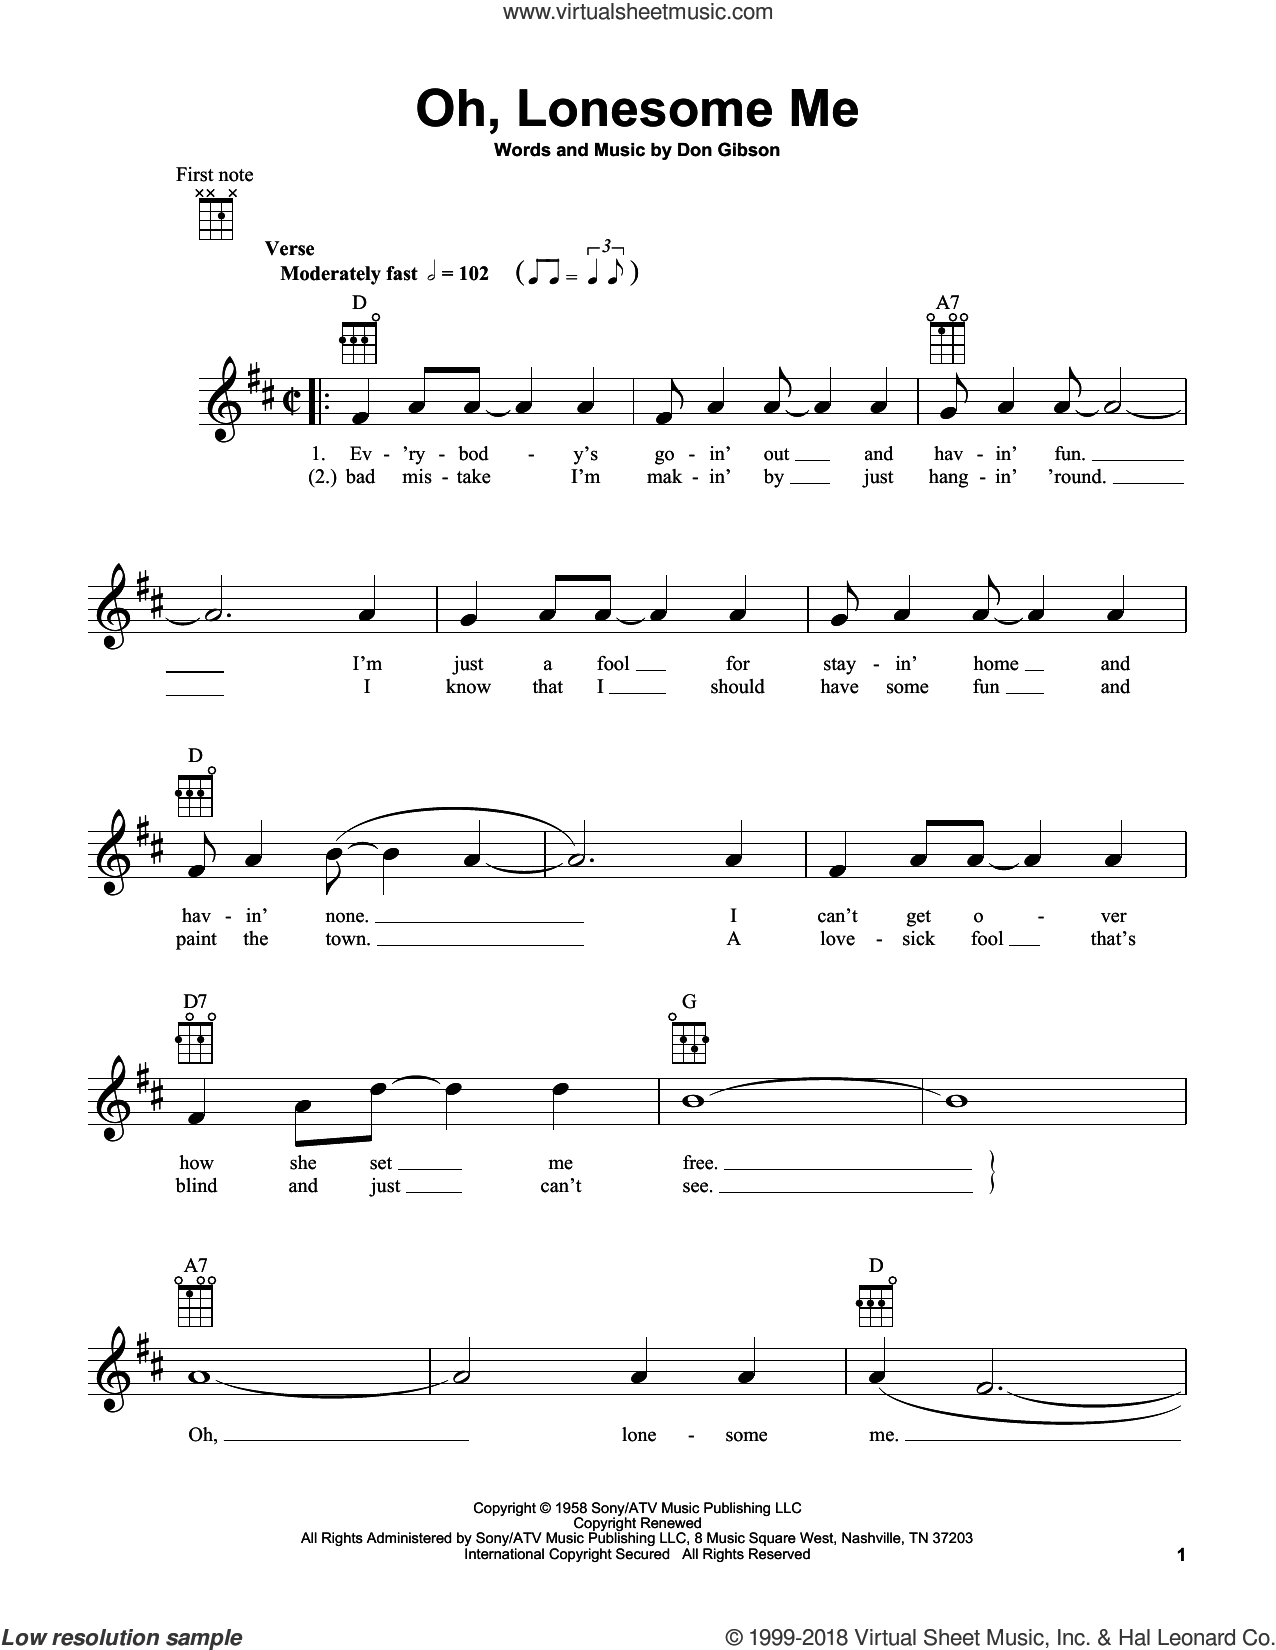 Oh, Lonesome Me sheet music for ukulele by Don Gibson. Score Image Preview.